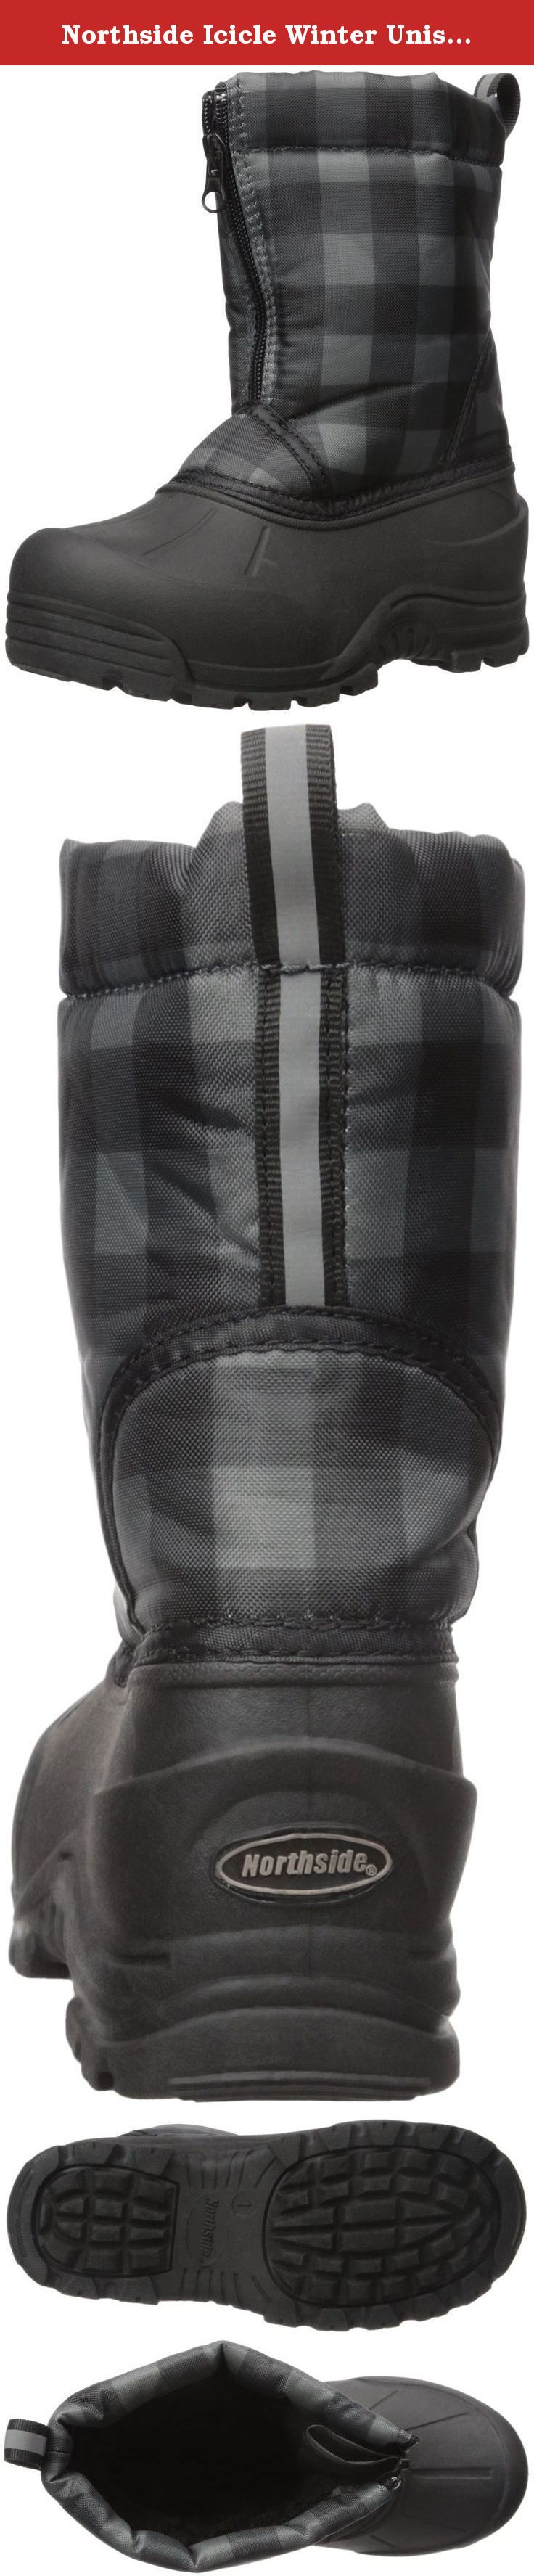 Northside Icicle Winter Unisex Boot (Toddler/Little Kid/Big Kid). This Northside Winter Boots is guaranteed authentic. It's crafted with Man Made.